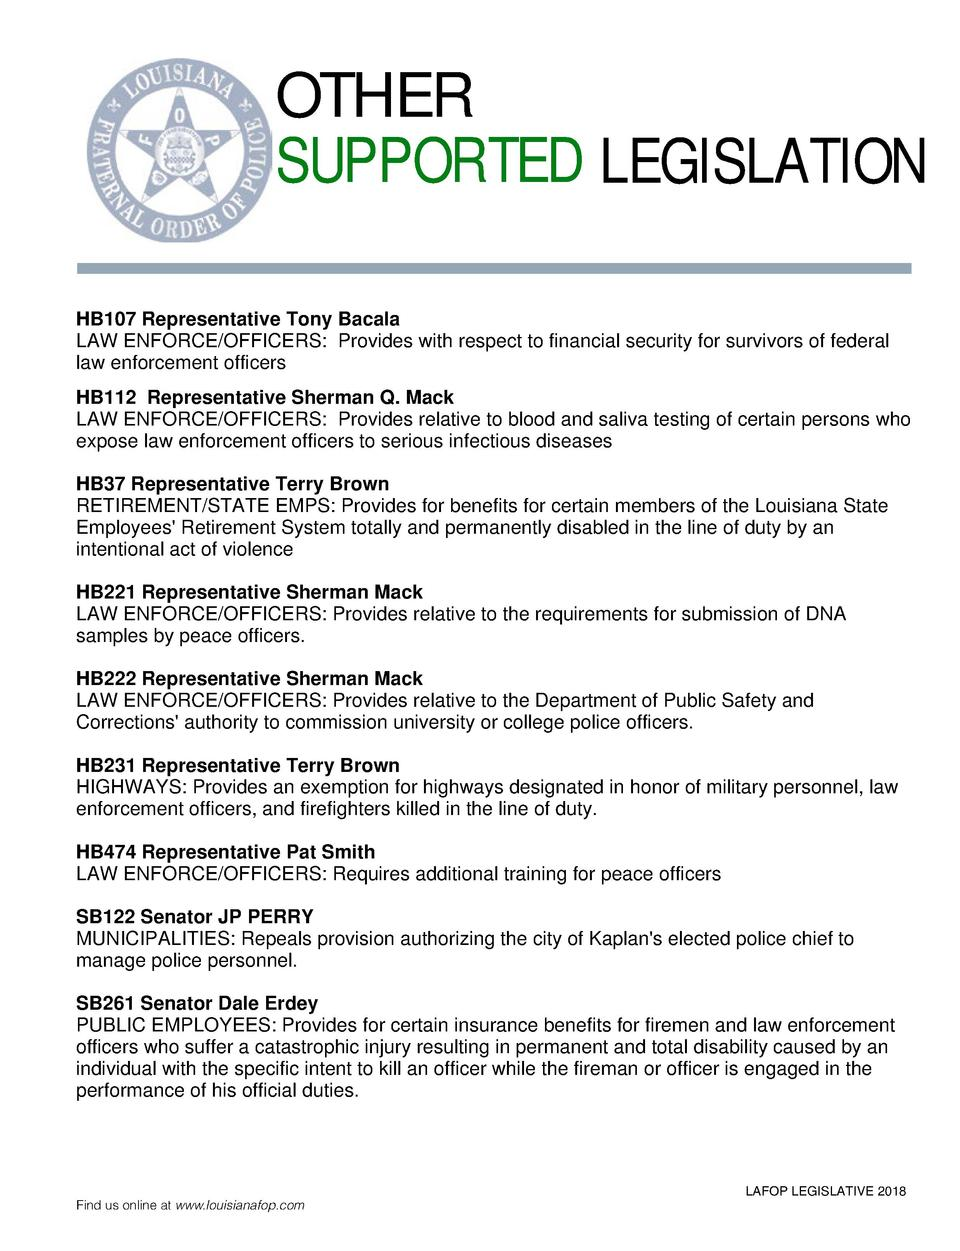 OTHER SUPPORTED LEGISLATION HB107 Representative Tony Bacala LAW ENFORCE OFFICERS  Provides with respect to financial secu...